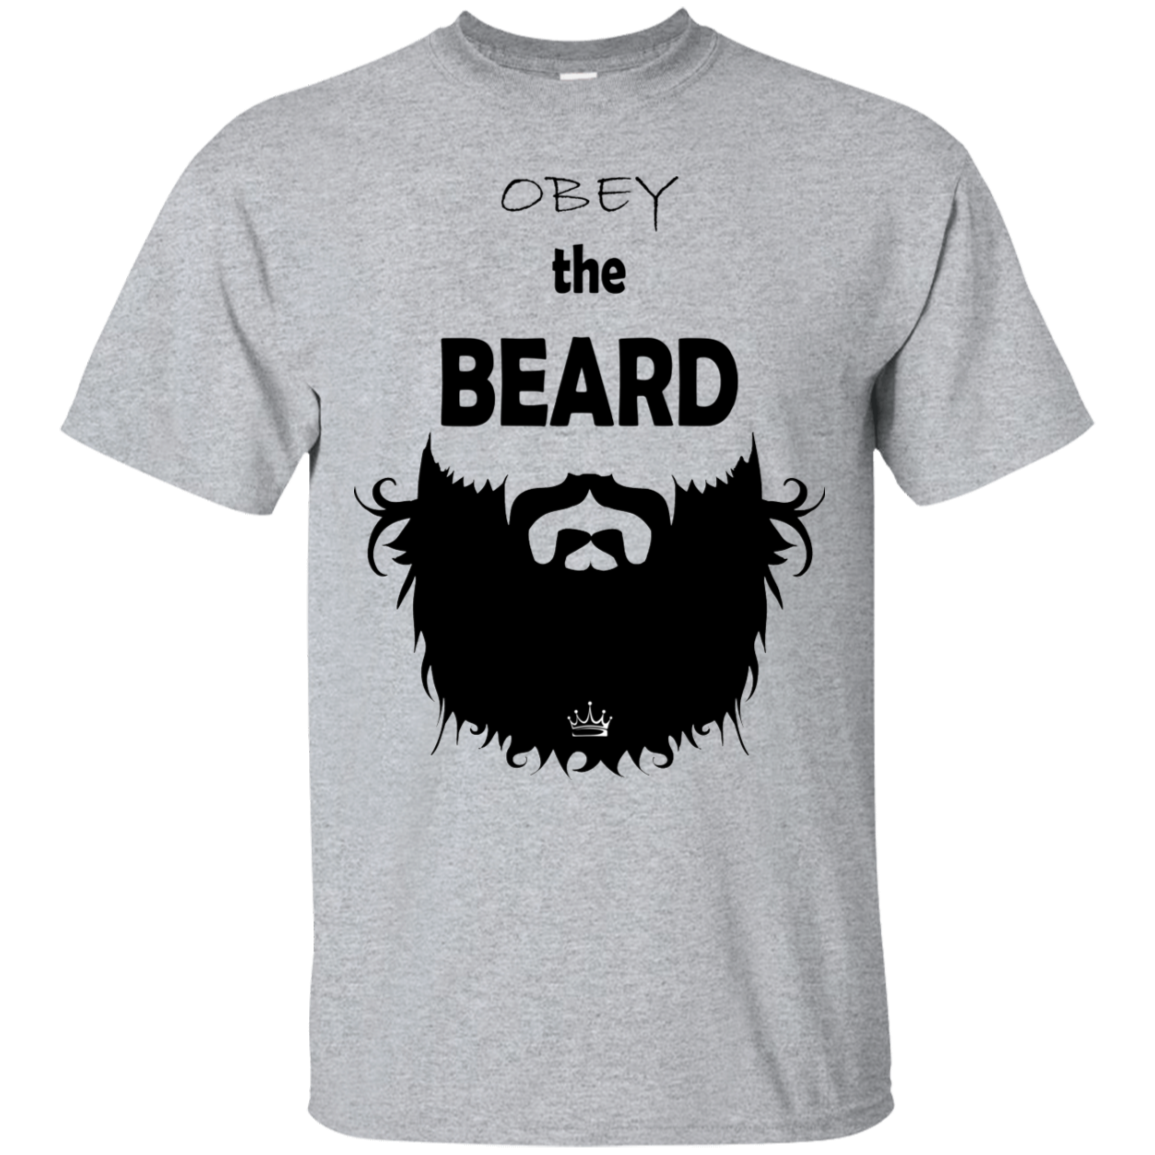 Obey the Beard